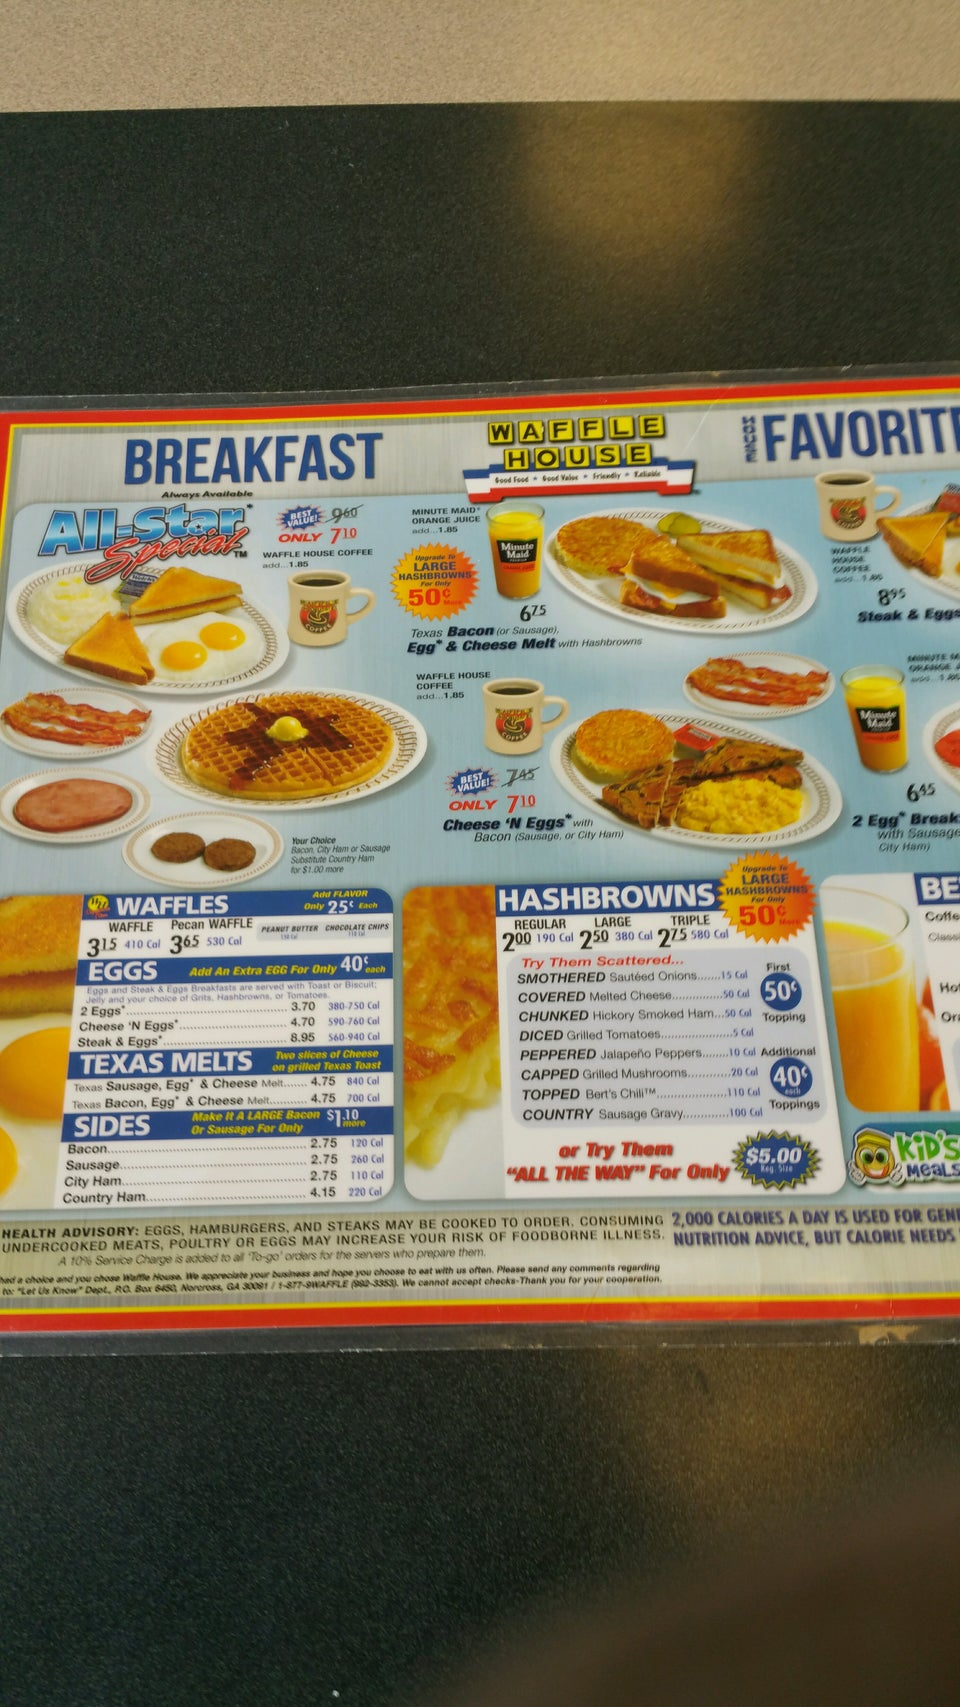 Waffle House 1315 Hwy 45 S, West Point